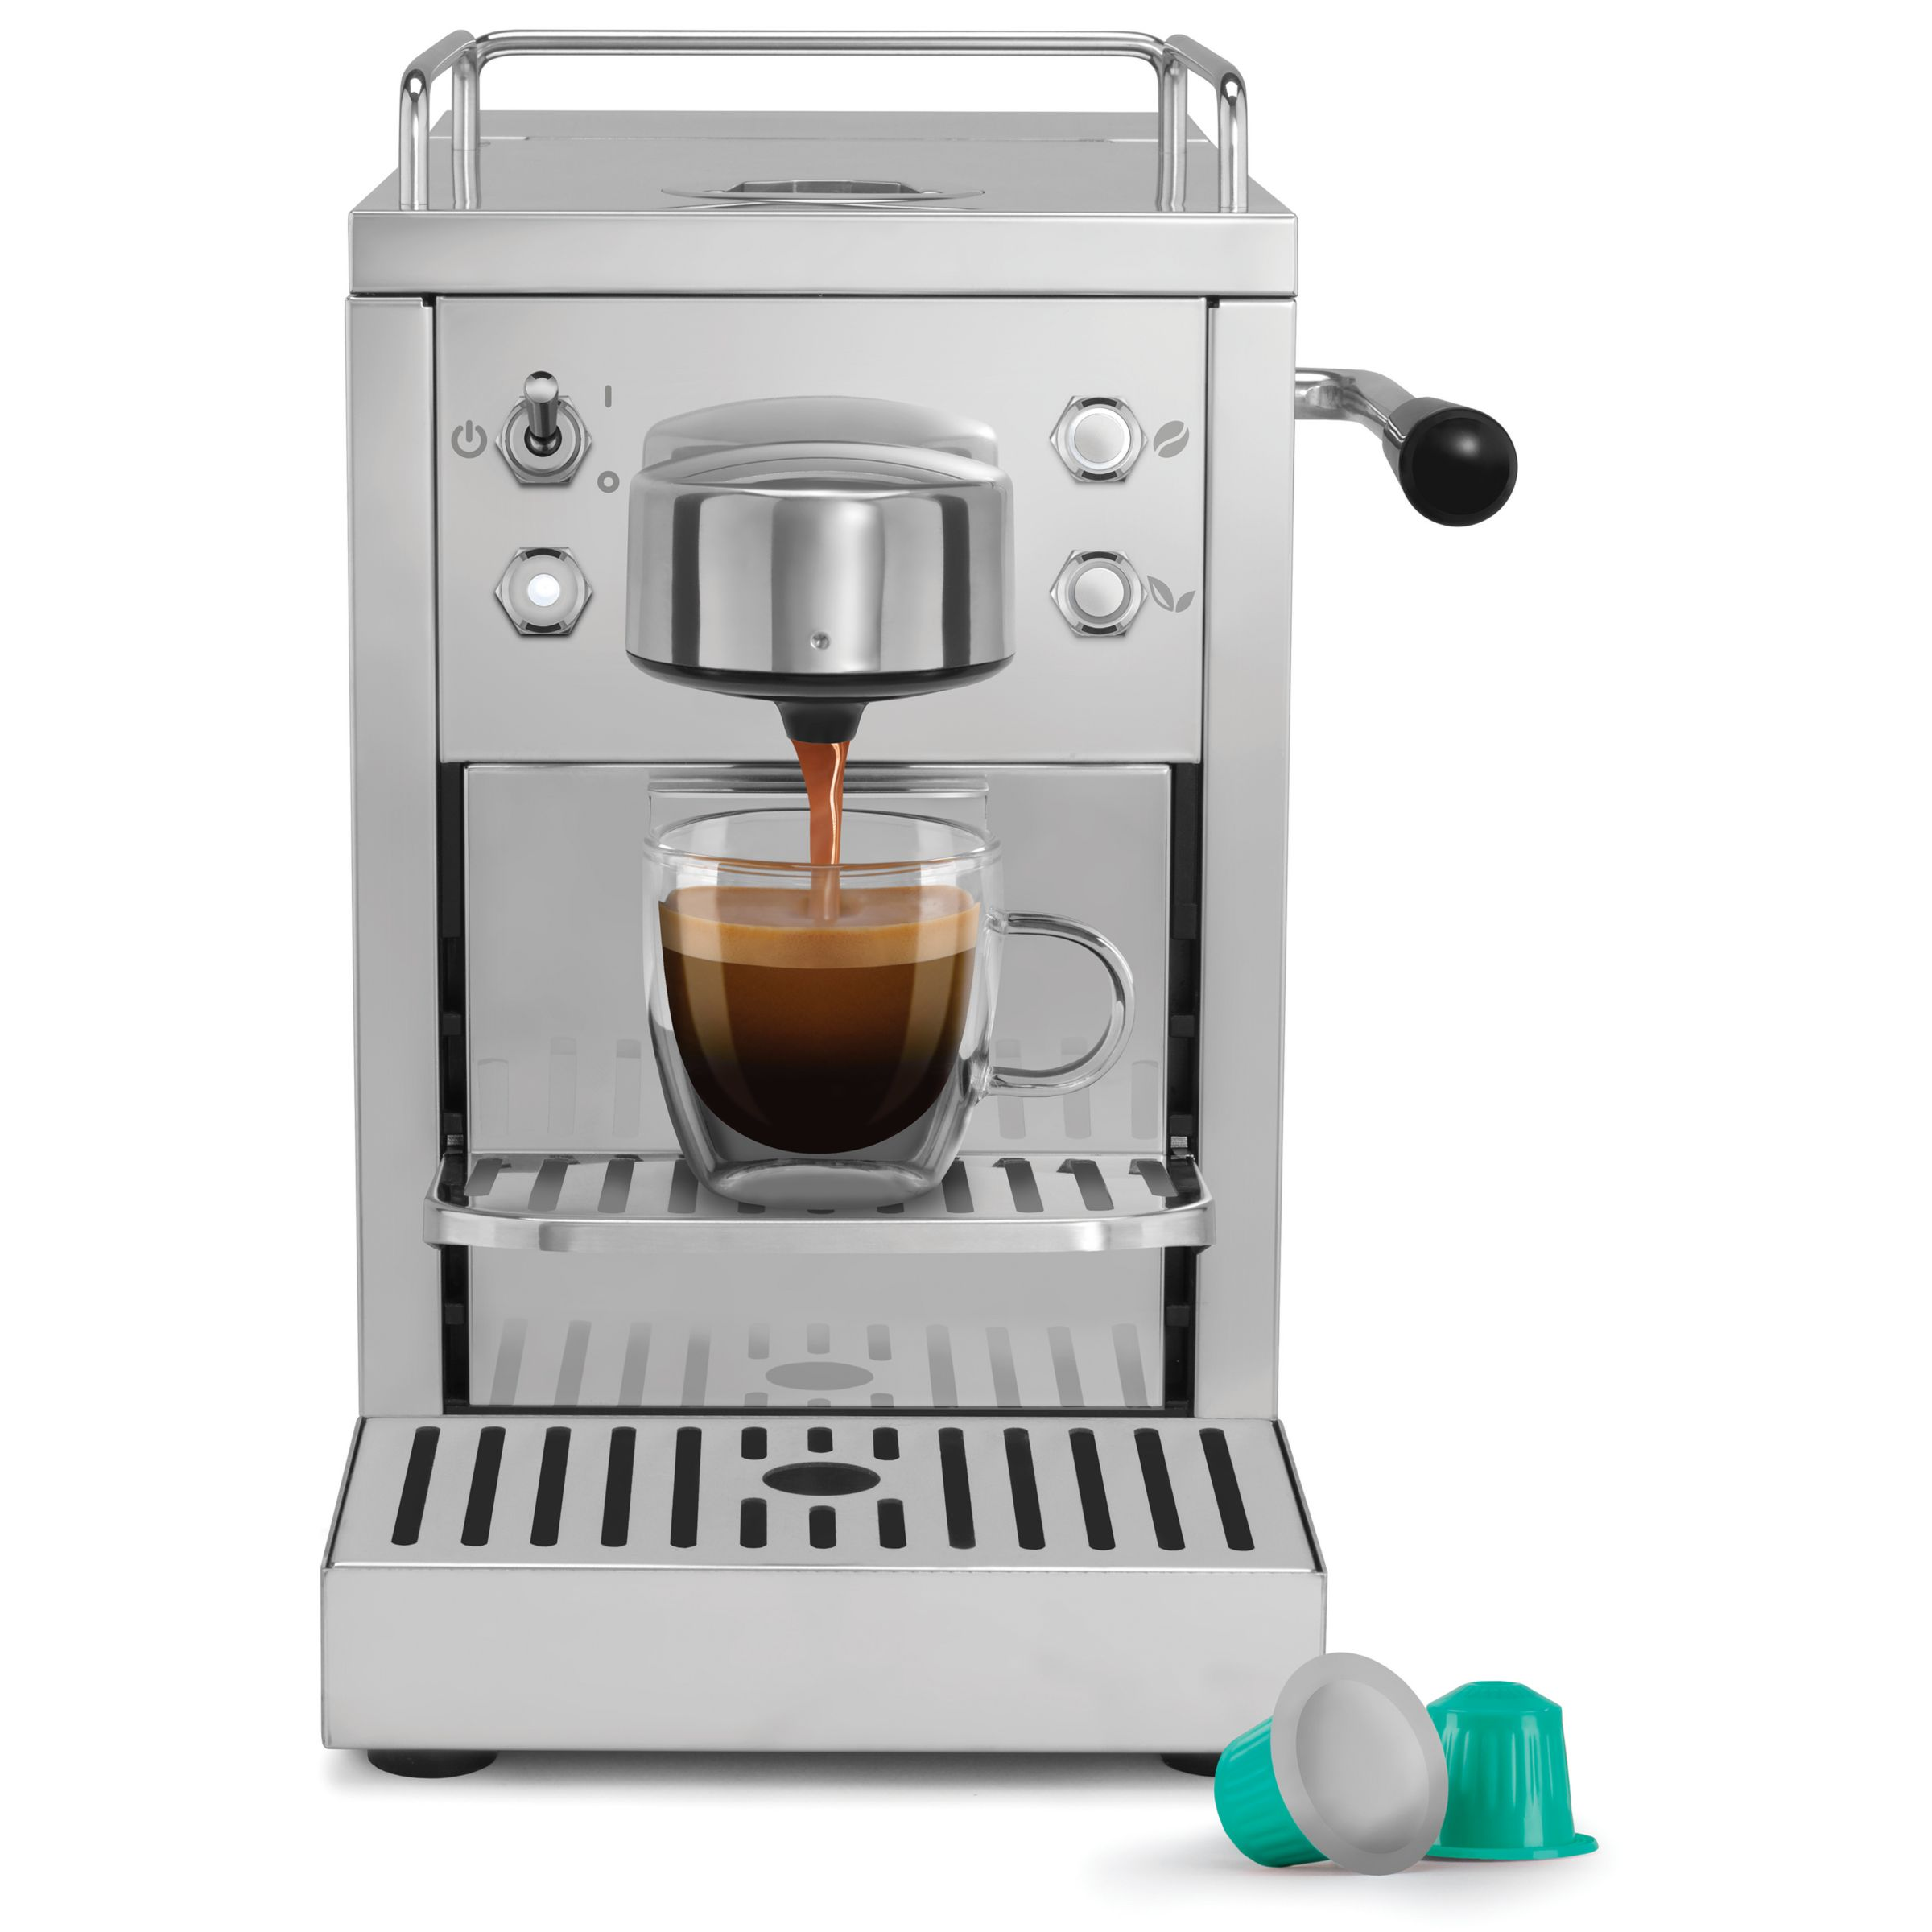 Buy Dualit 85170 Classic Coffee Capsule Machine, Stainless Steel John Lewis